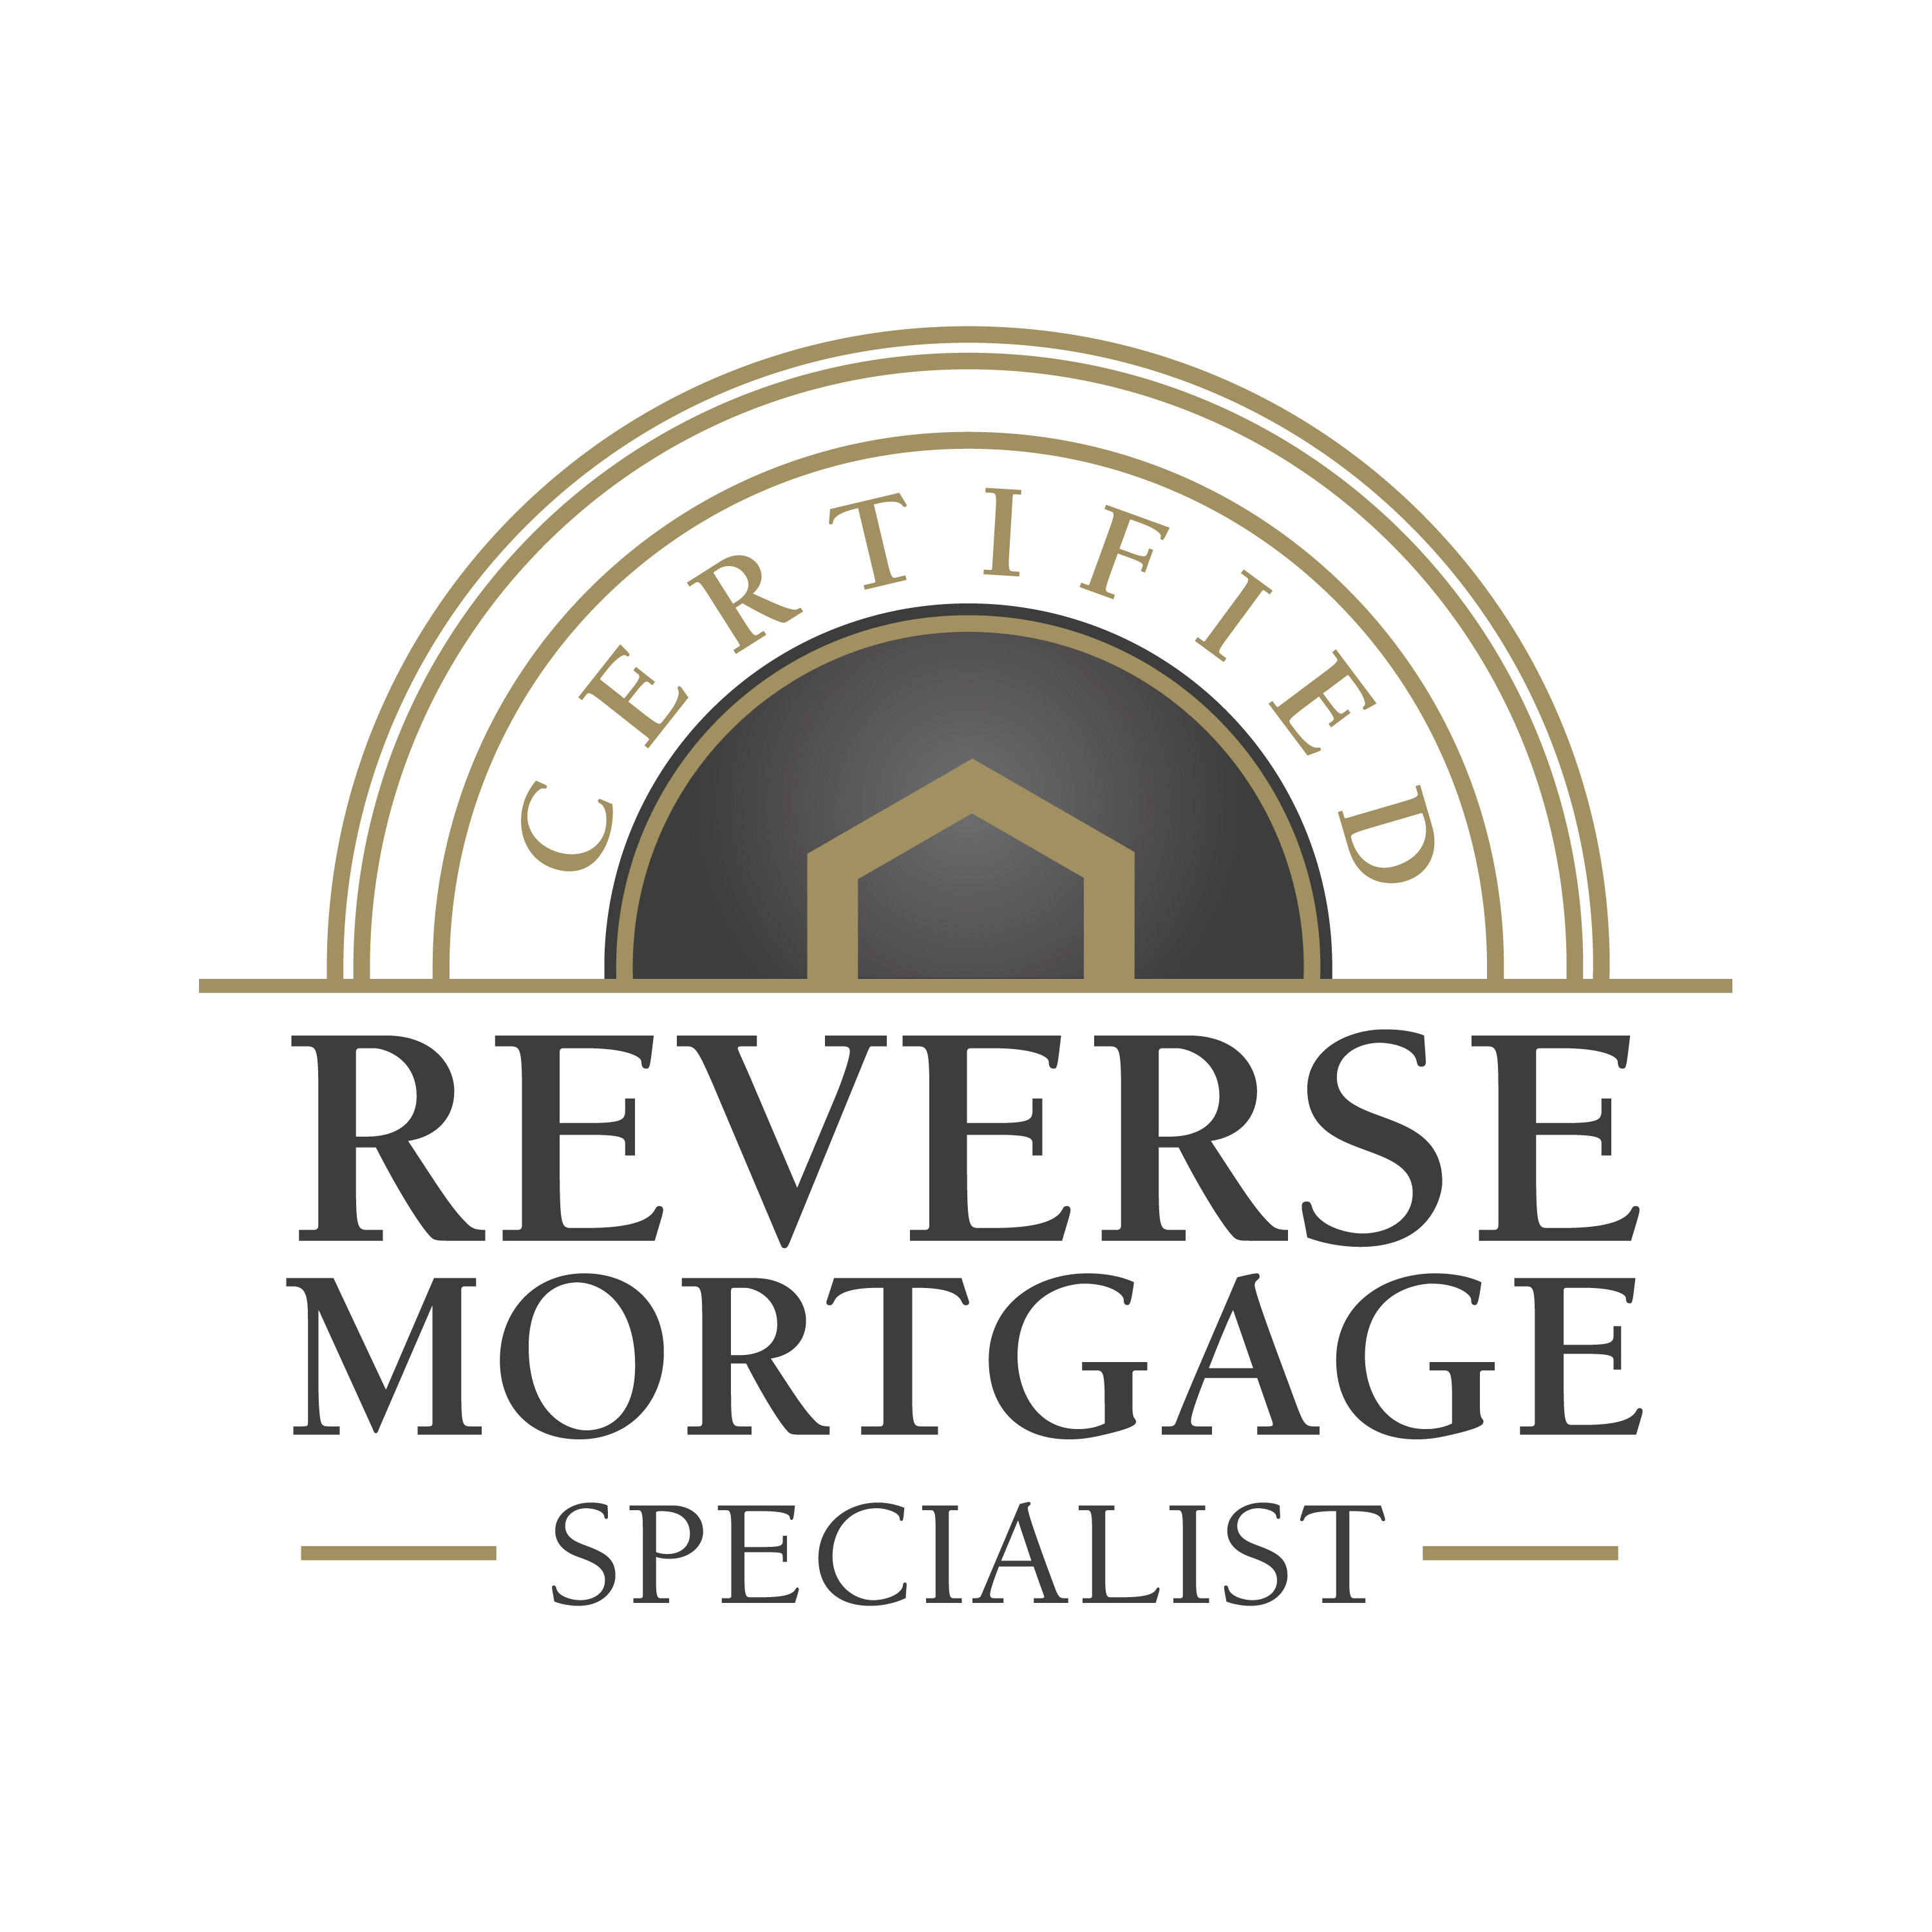 canadian reverse mortgages explained | dave the mortgage broker